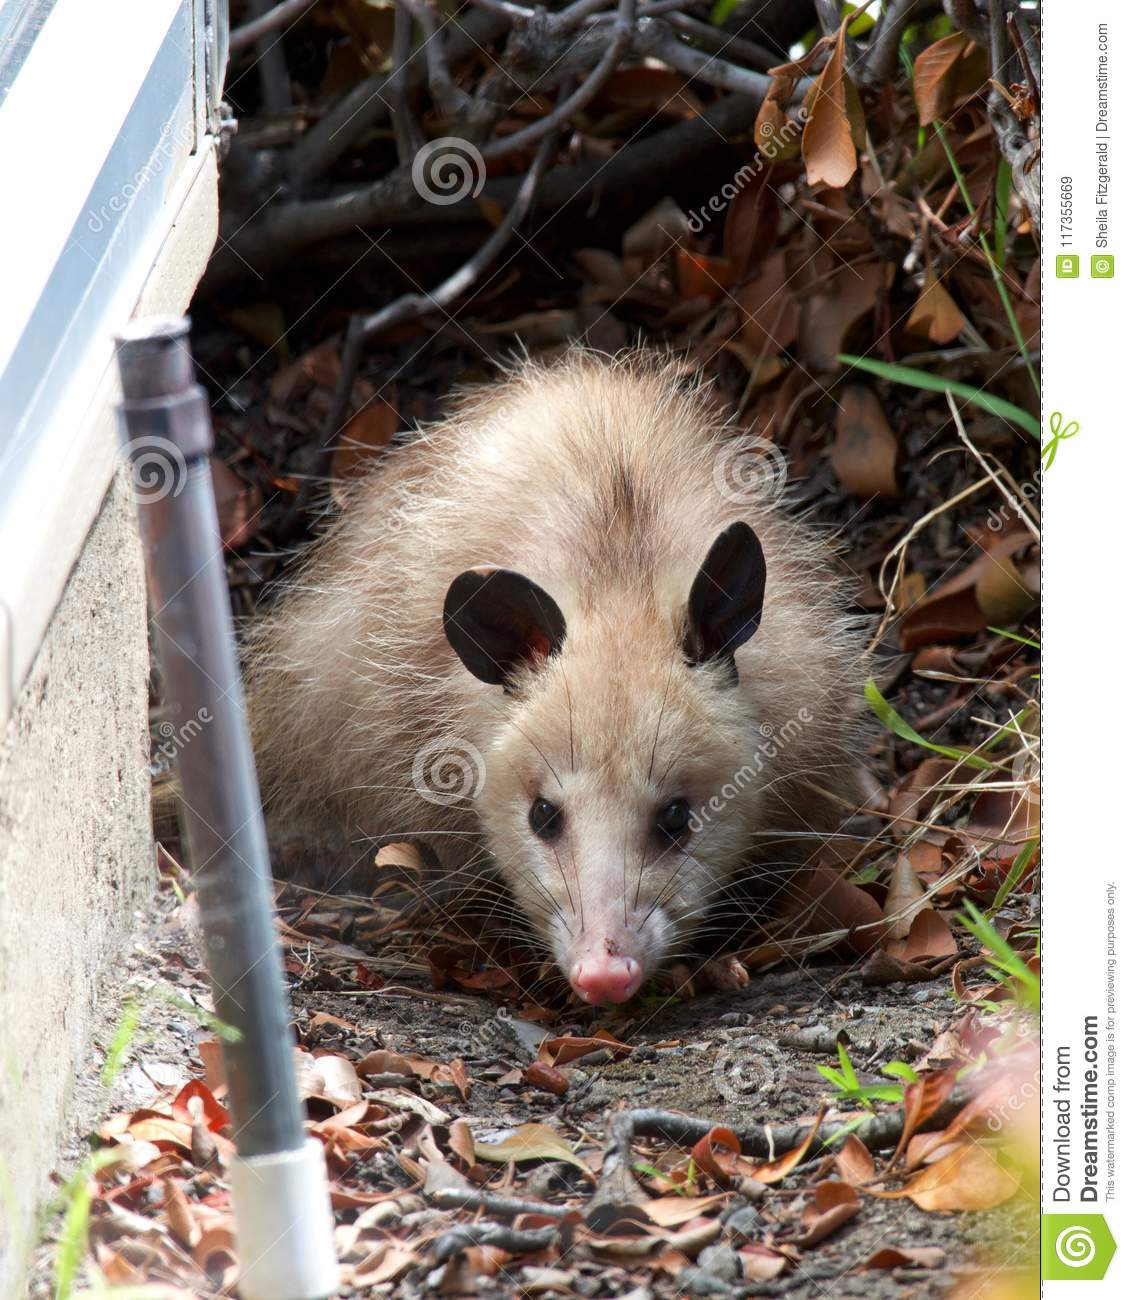 Young Possum Next To A House Sprinkler In Foreground Stock